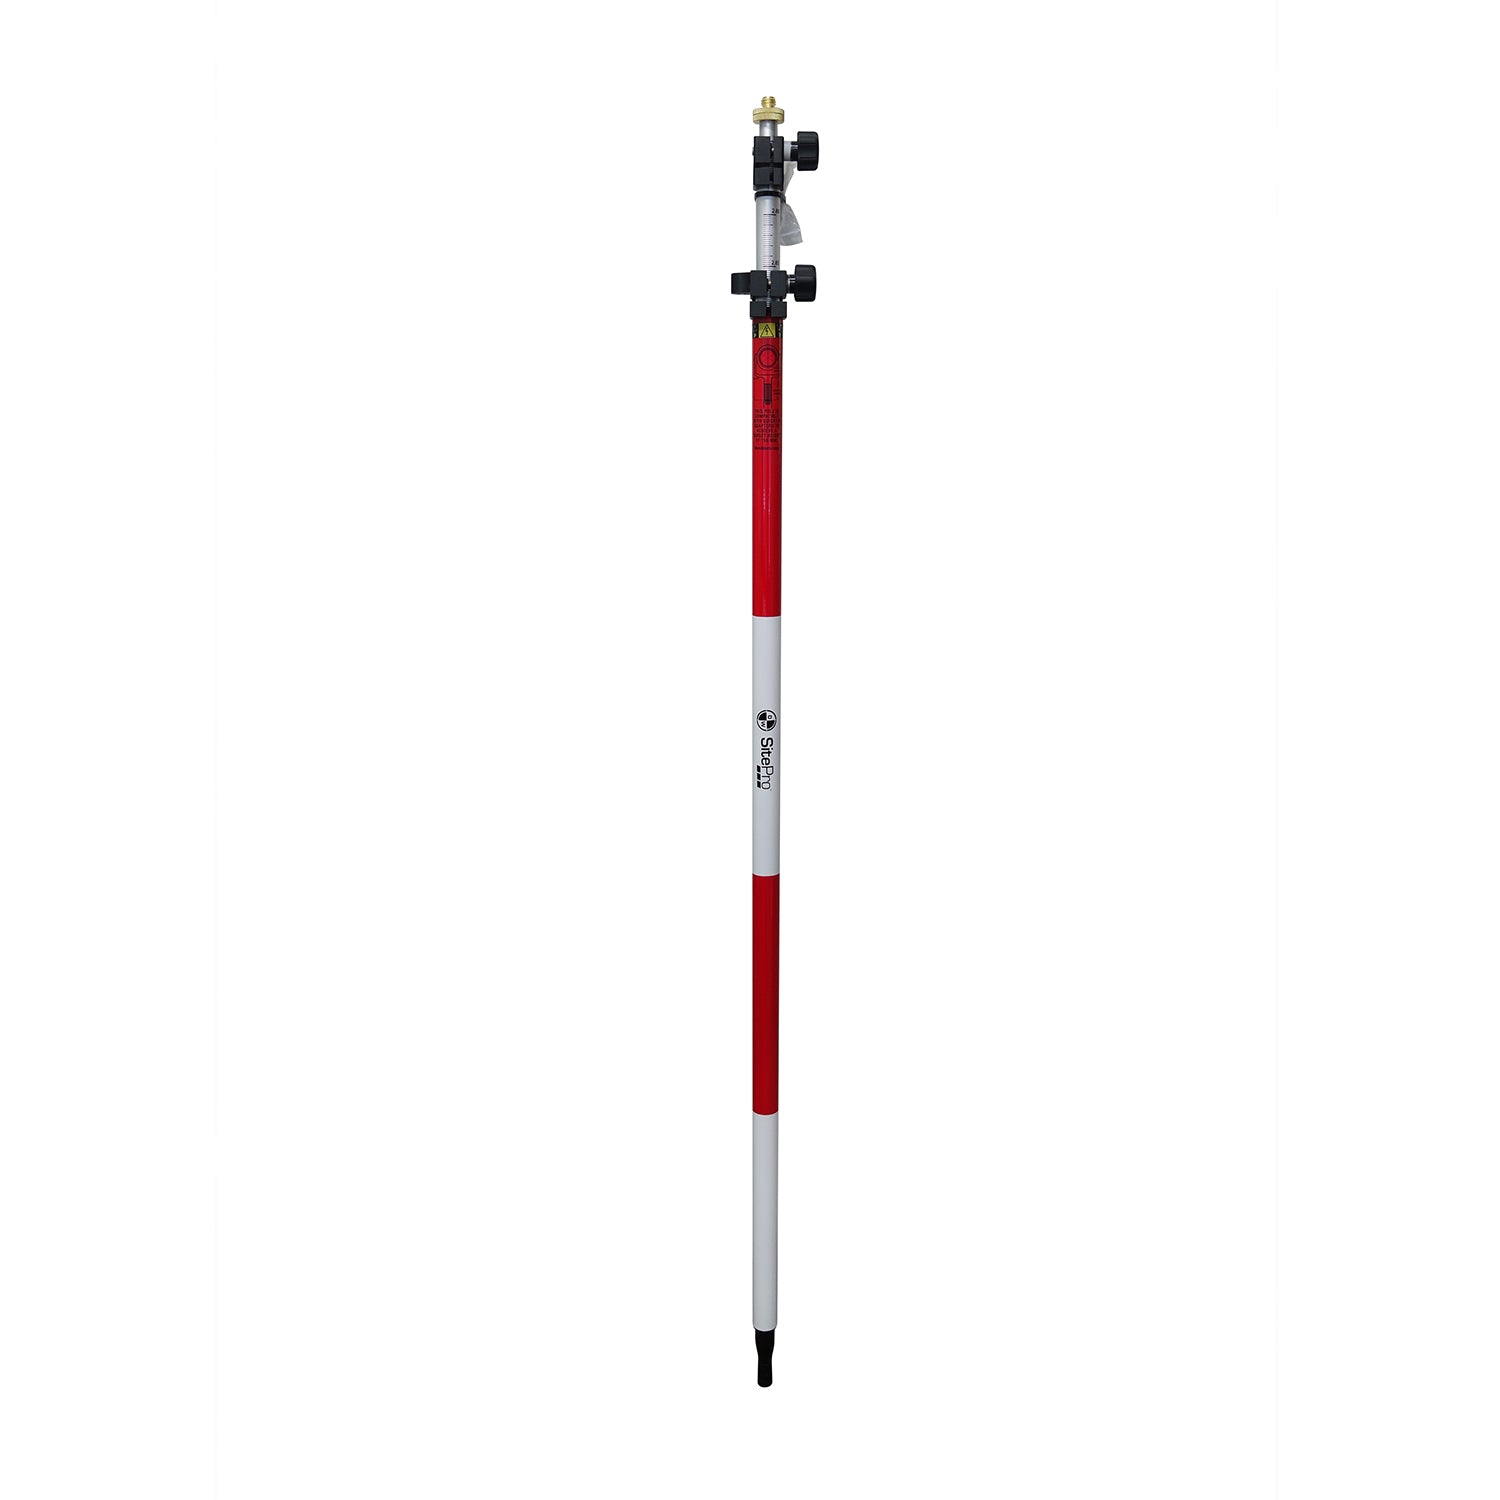 SitePro 12 ft Twist Lock Prism Pole (10ths, Metric) -Rods, Poles & Accessories- eGPS Solutions Inc.